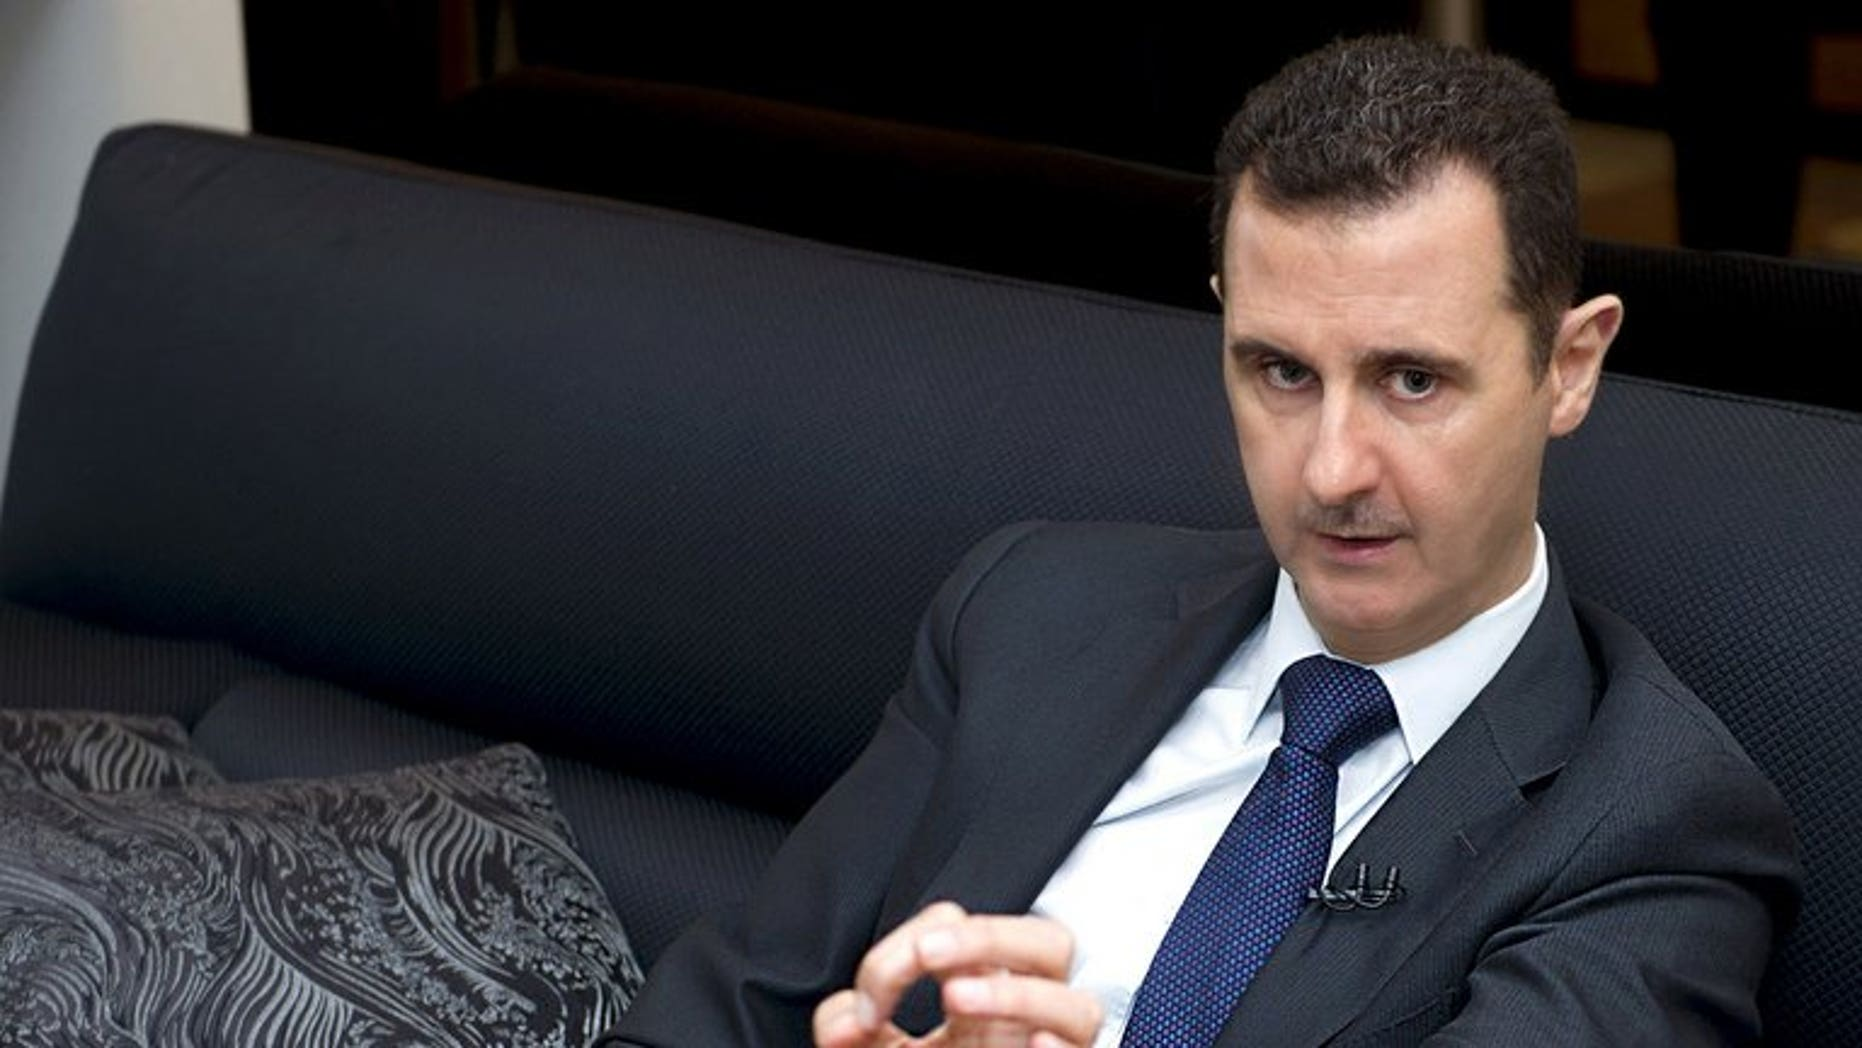 A handout picture released by the Syrian Arab News Agency (SANA) on June 17, 2013, shows Syrian President Bashar al-Assad speaking during an interview with the Frankfurter Allgemeine Zeitung newspaper in Damascus.